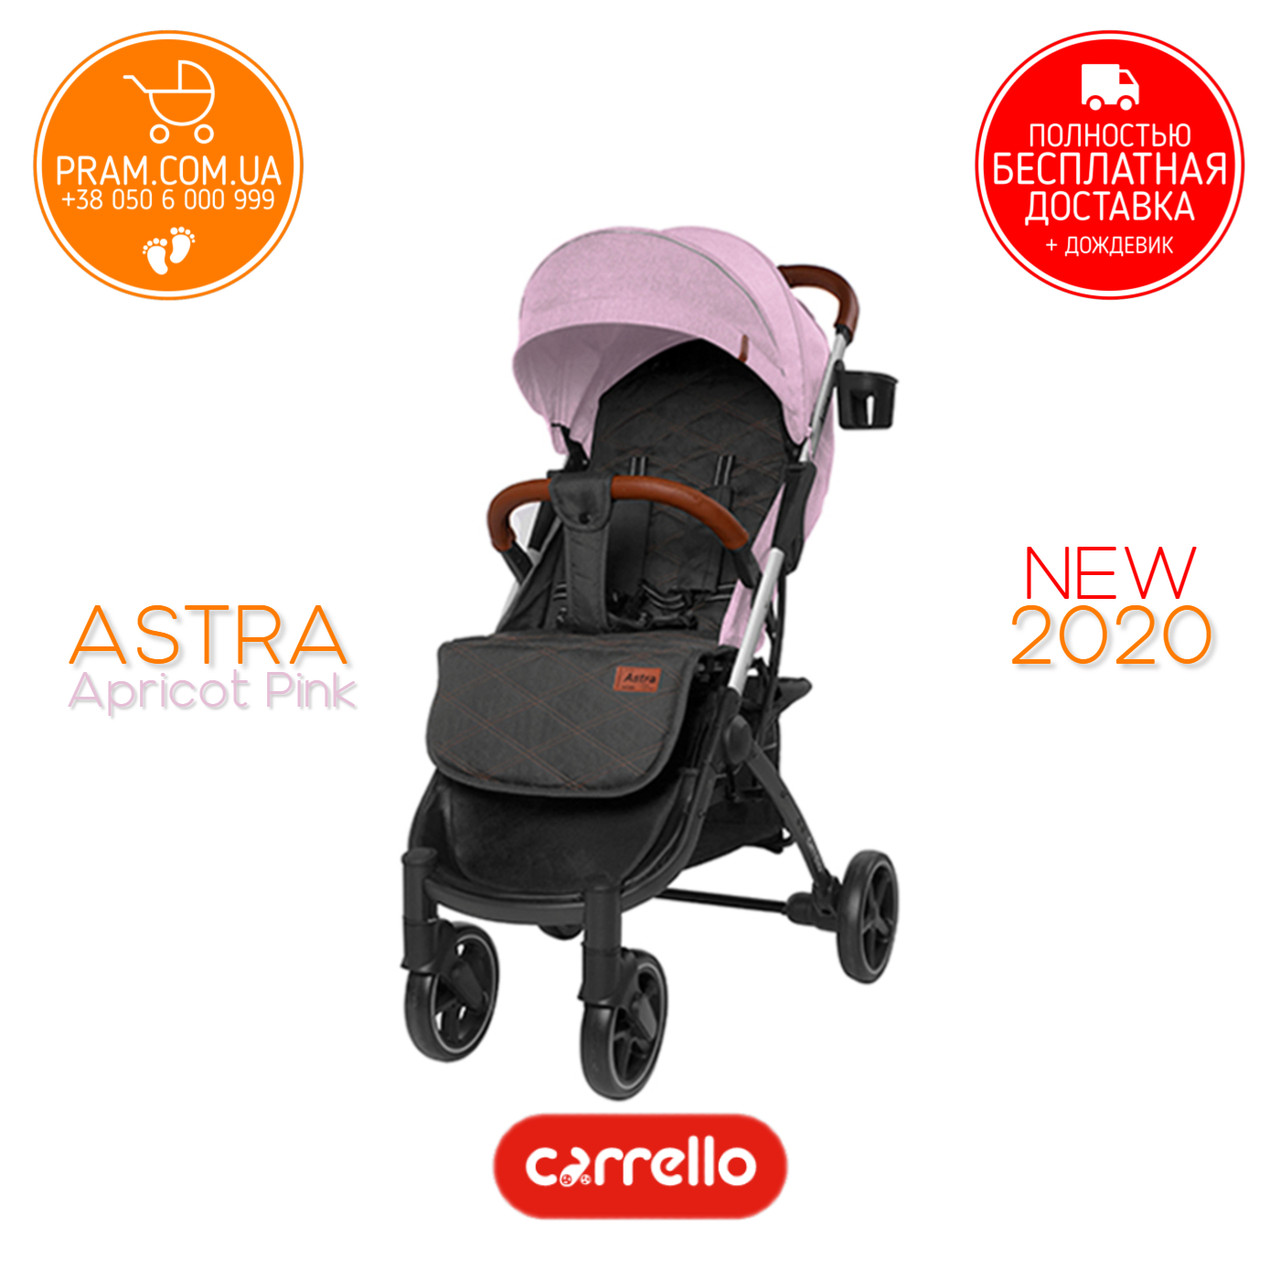 CARRELLO ASTRA CRL-5505 прогулочная коляска Apricot Pink Розовый